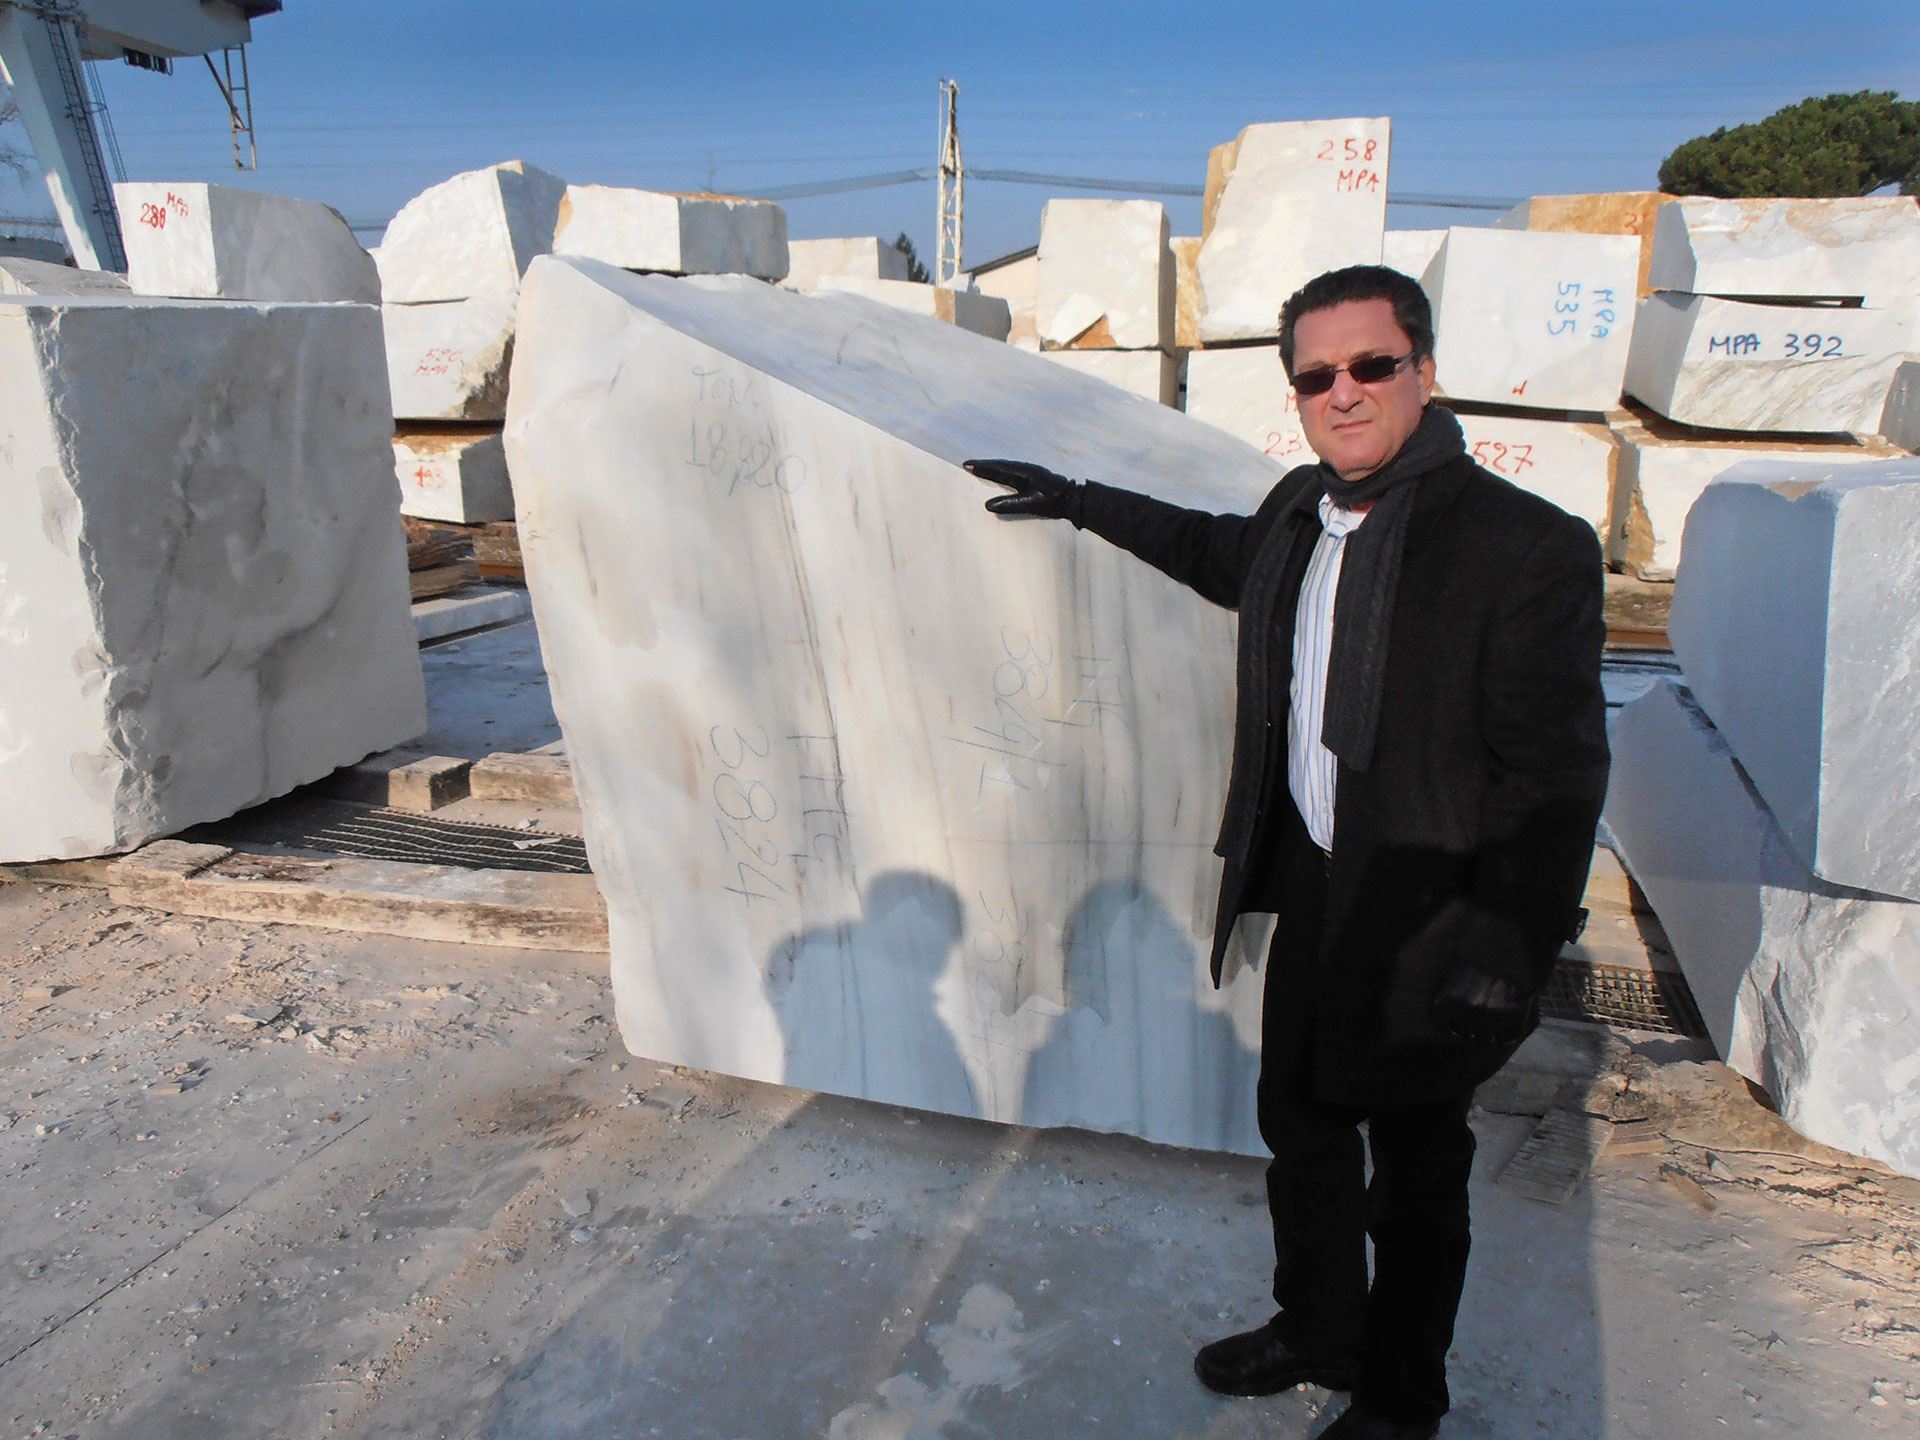 Jose Ubilla, owner of Real Stone & Granite in Fort Pierce